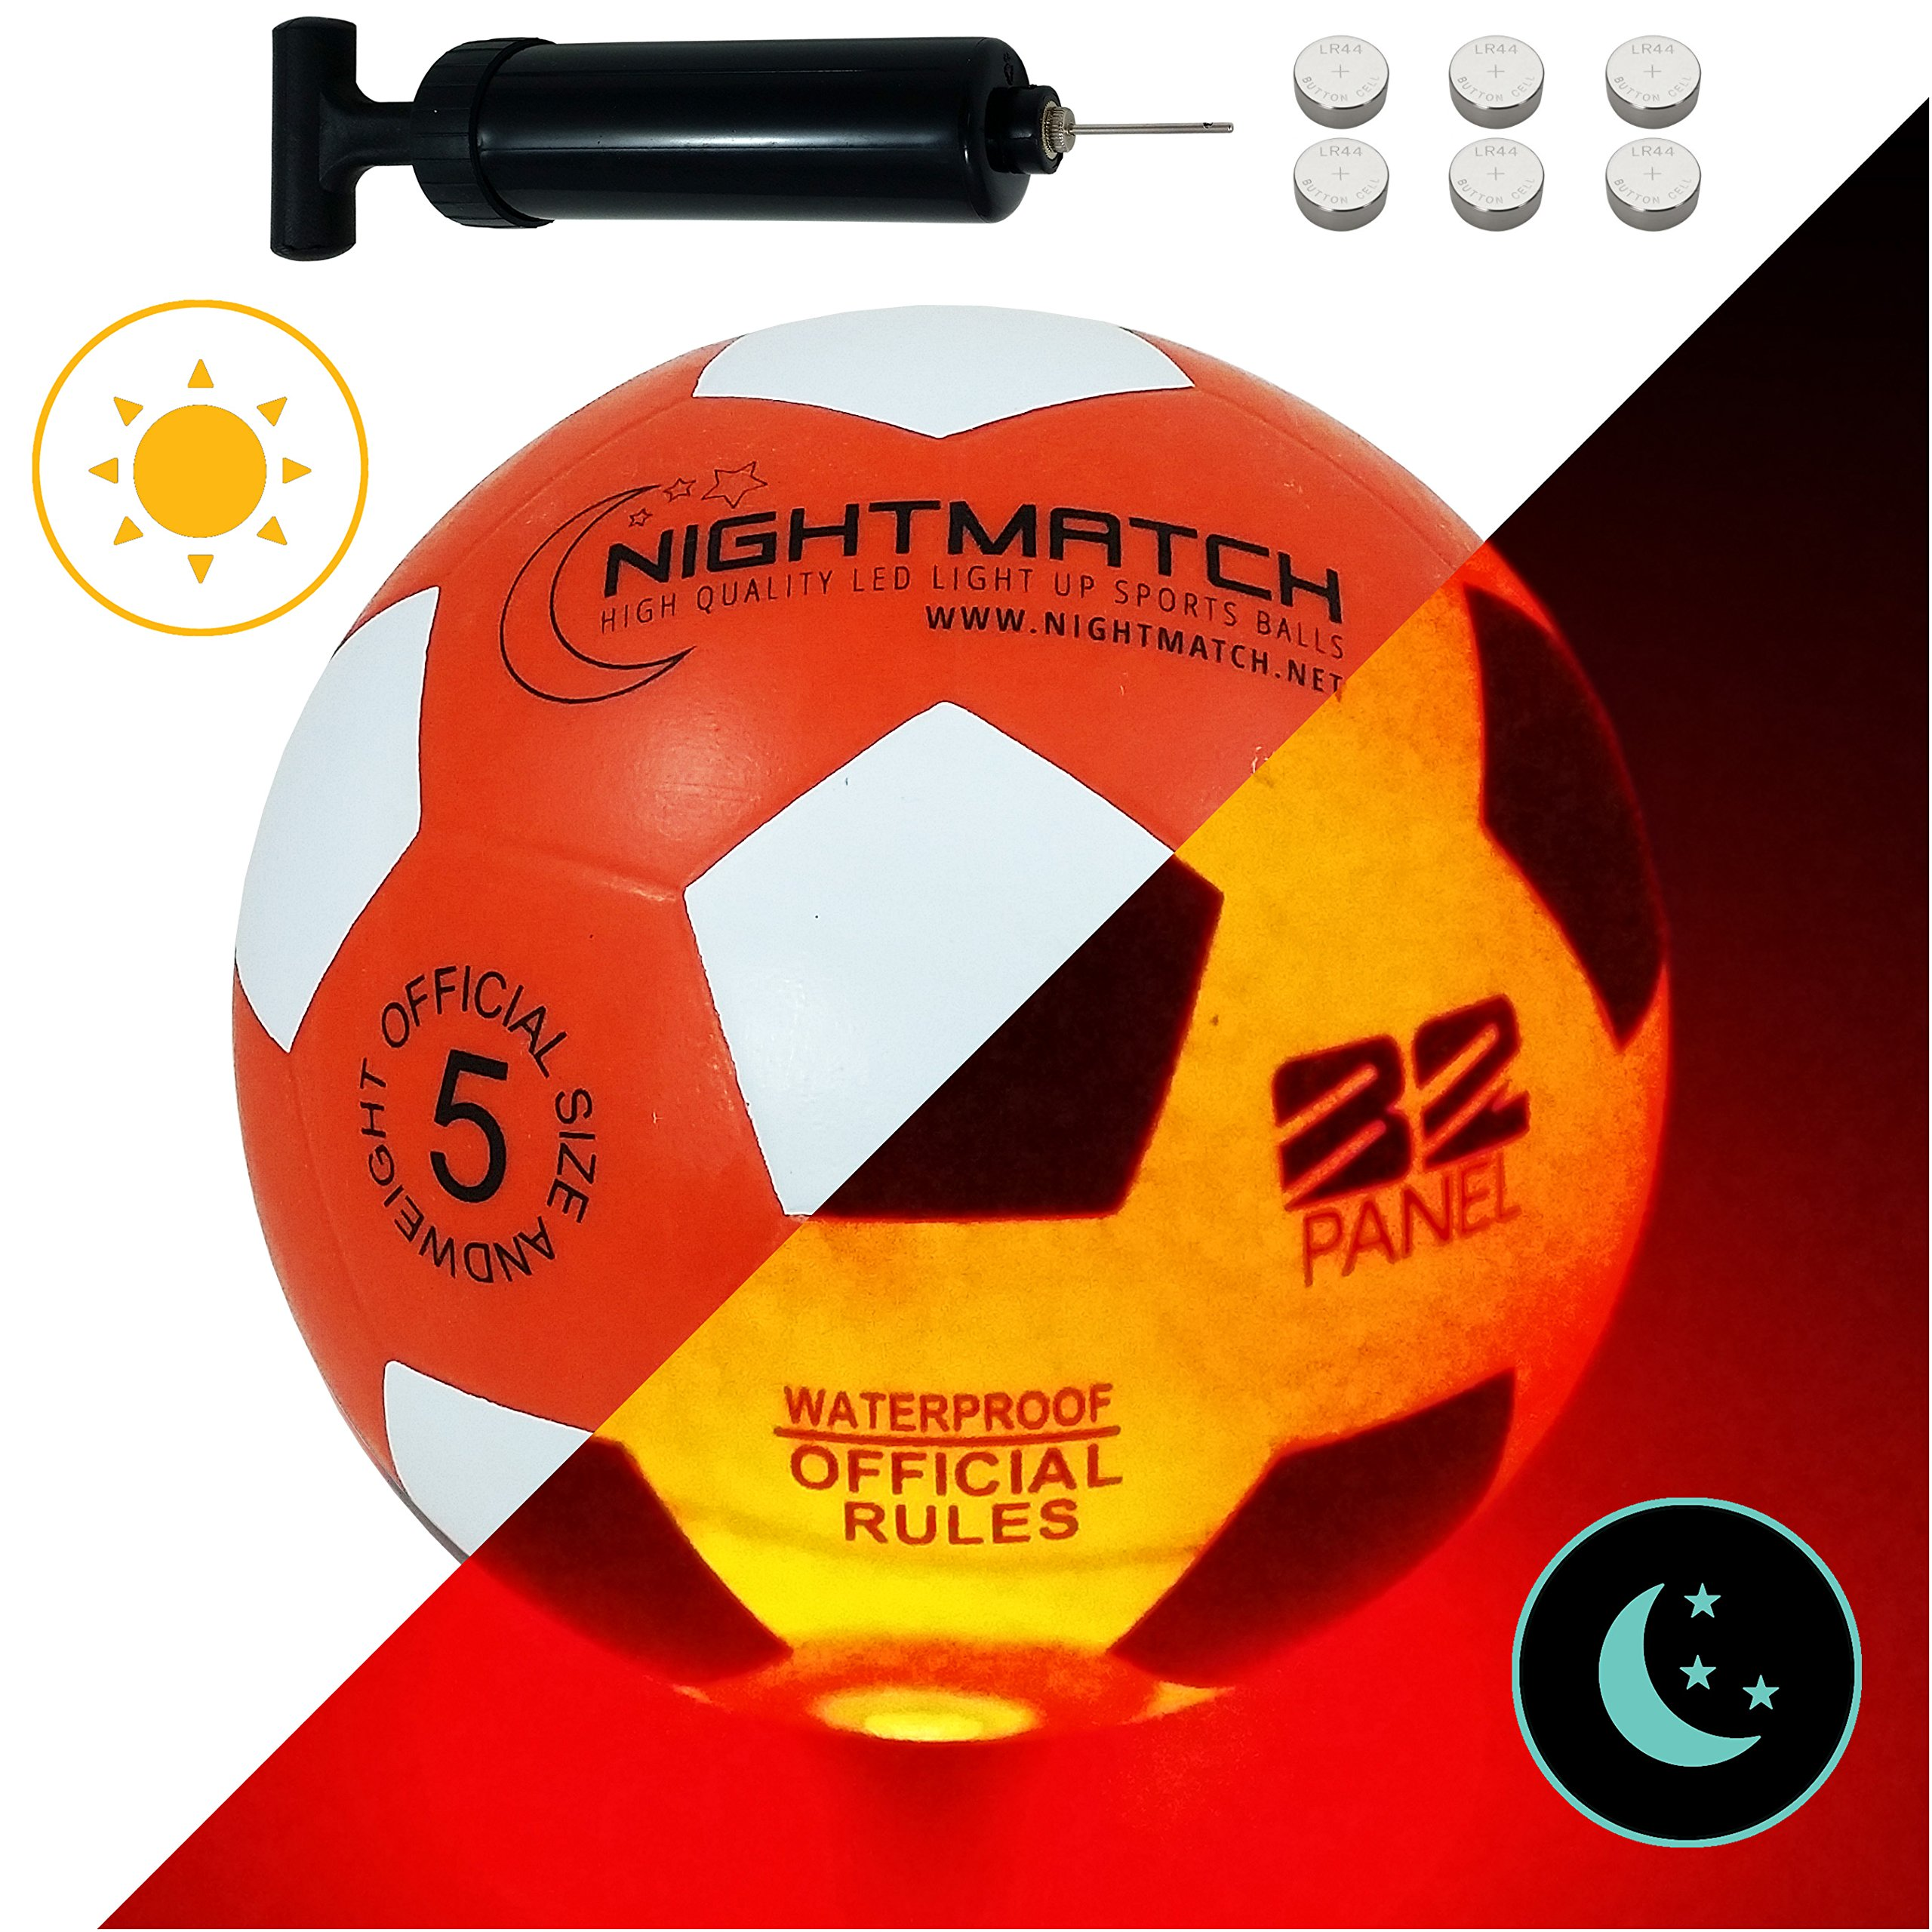 NightMatch Light Up Soccer Ball Flaming Red Edition INCL BALL PUMP and SPARE BATTERIES - Inside LED lights up when kicked - Glow in the Dark Soccer Ball - Size 5 - Official Size & Weight -orange/white by NIGHTMATCH